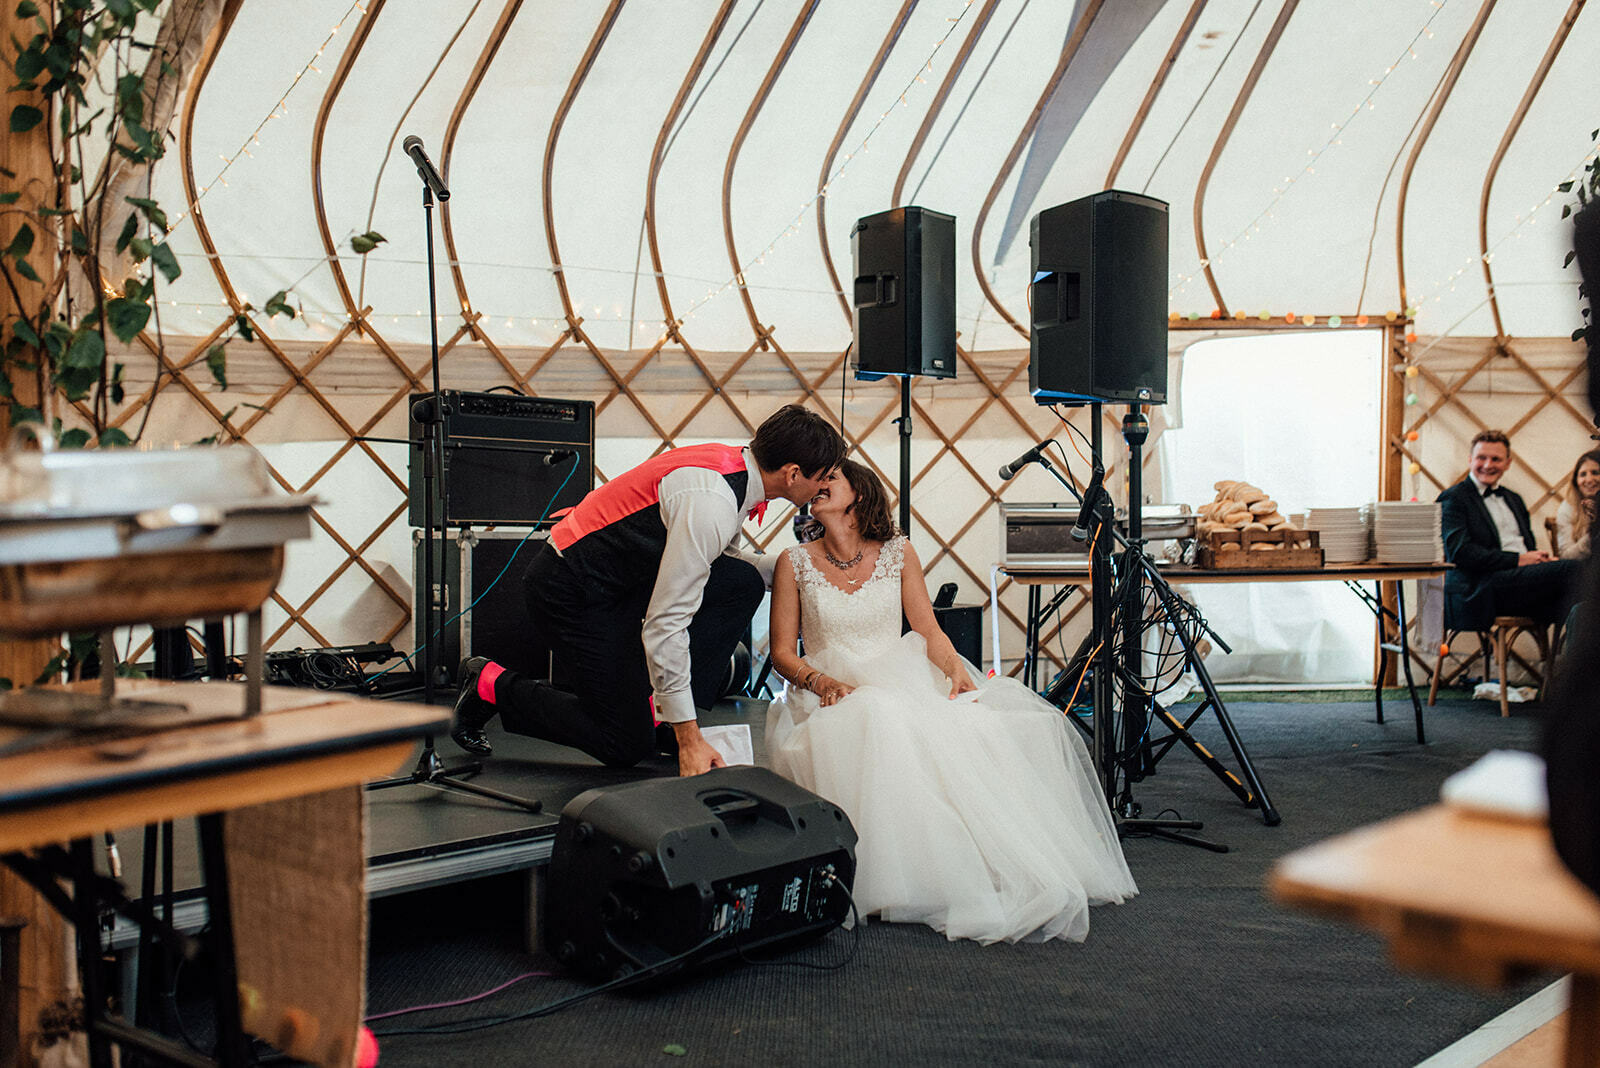 Groom kisses bride as she sits on the stage during his speech